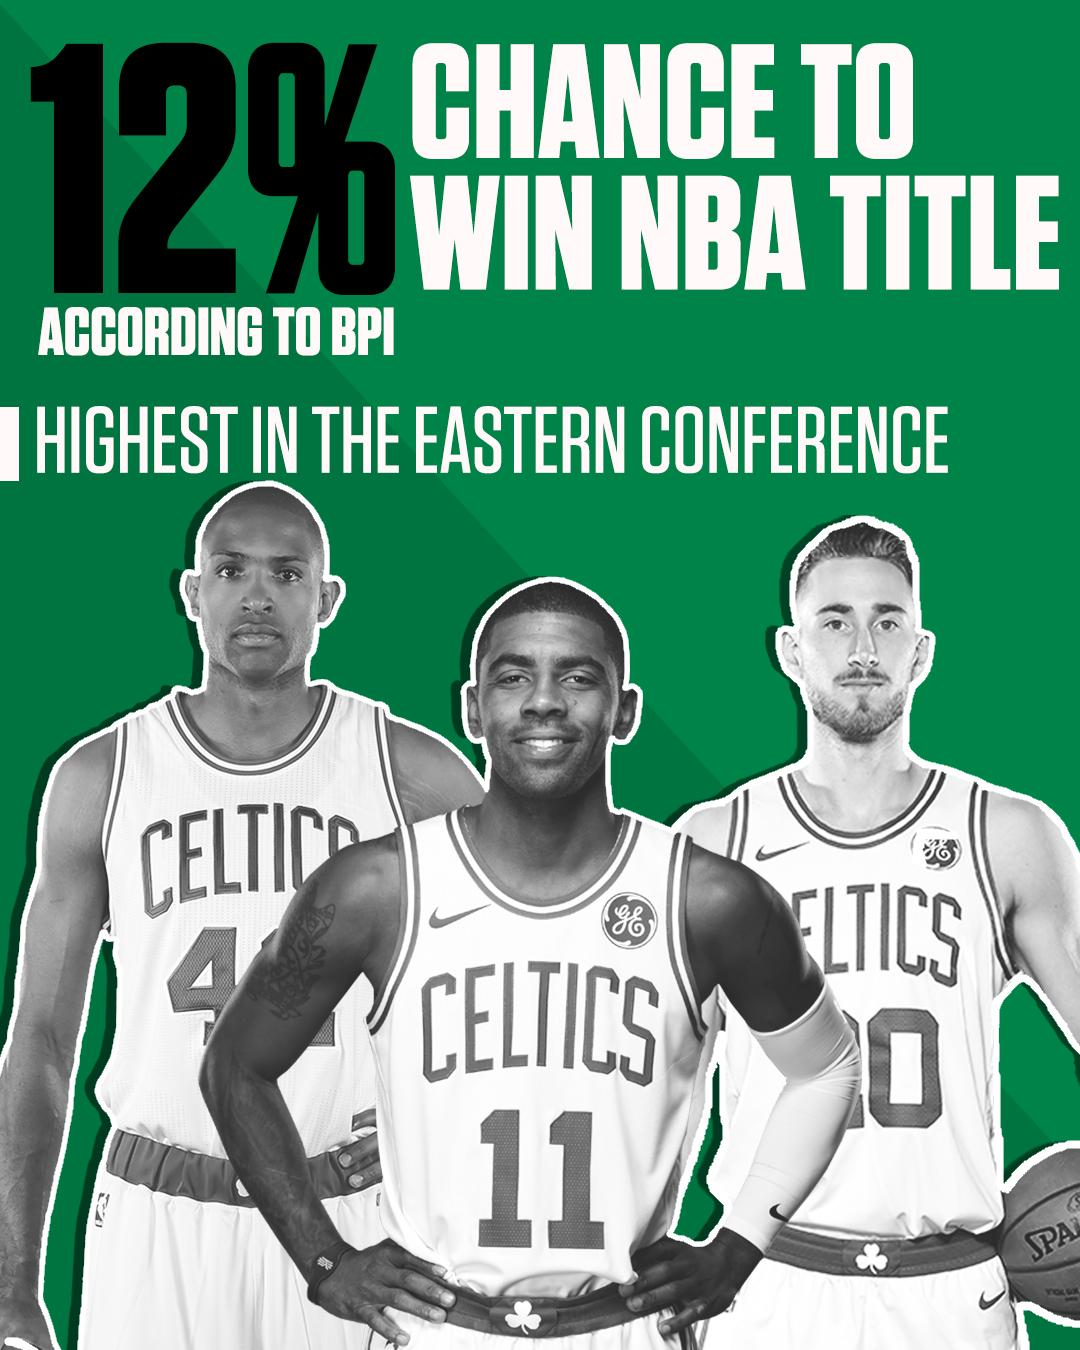 12 days to tipoff. https://t.co/EOth7zzCnD